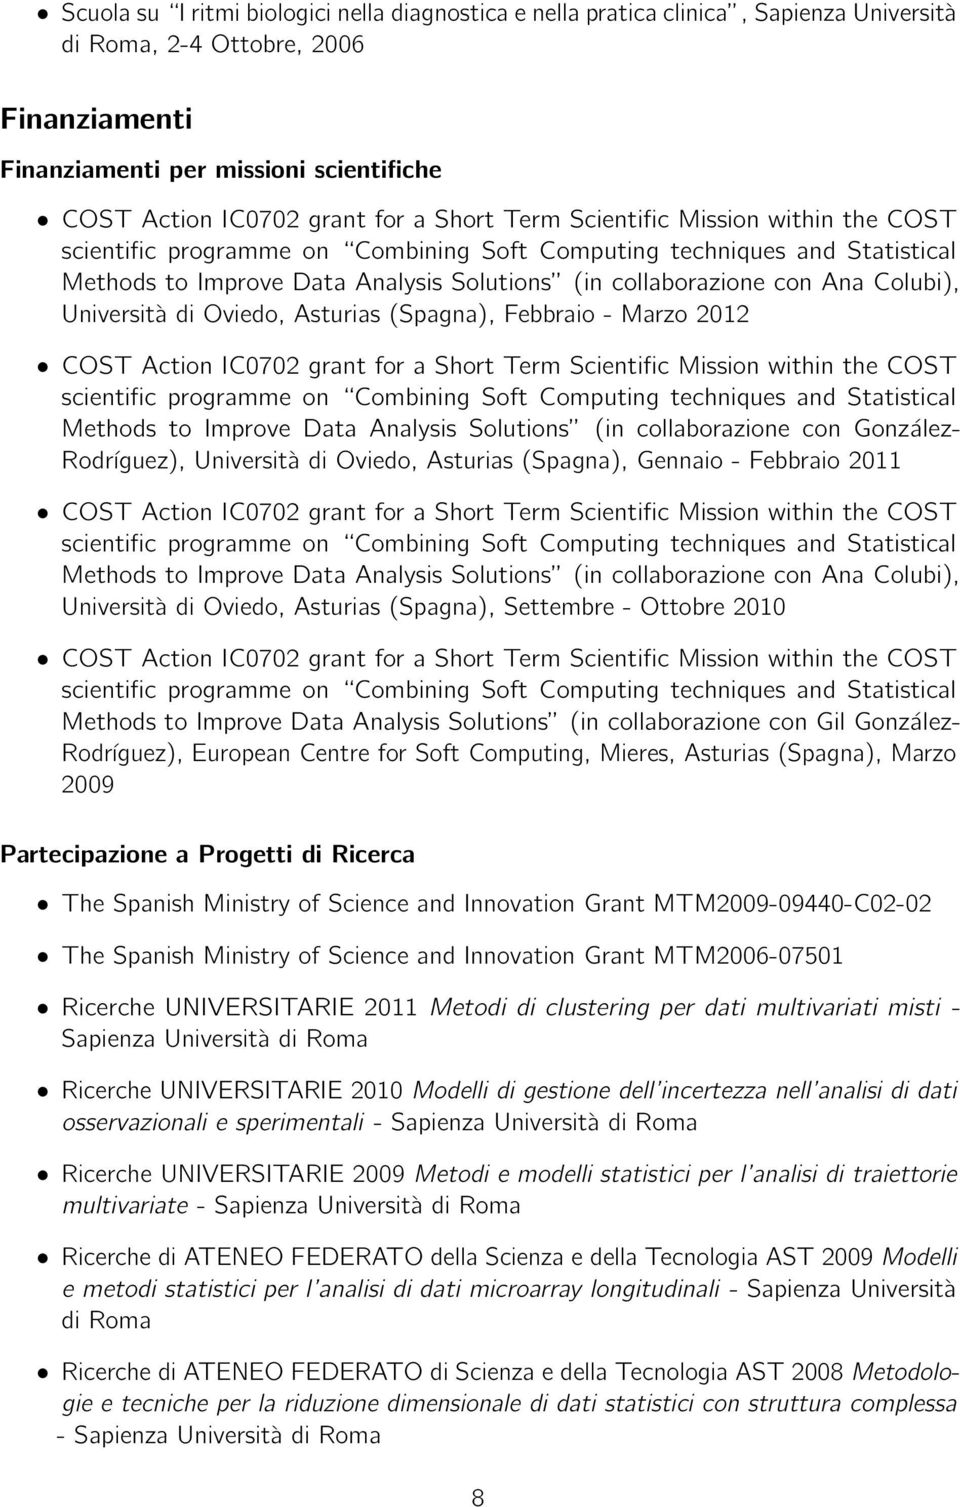 Colubi), Università di Oviedo, Asturias (Spagna), Febbraio - Marzo 2012 COST Action IC0702 grant for a Short Term Scientific Mission within the COST scientific programme on Combining Soft Computing